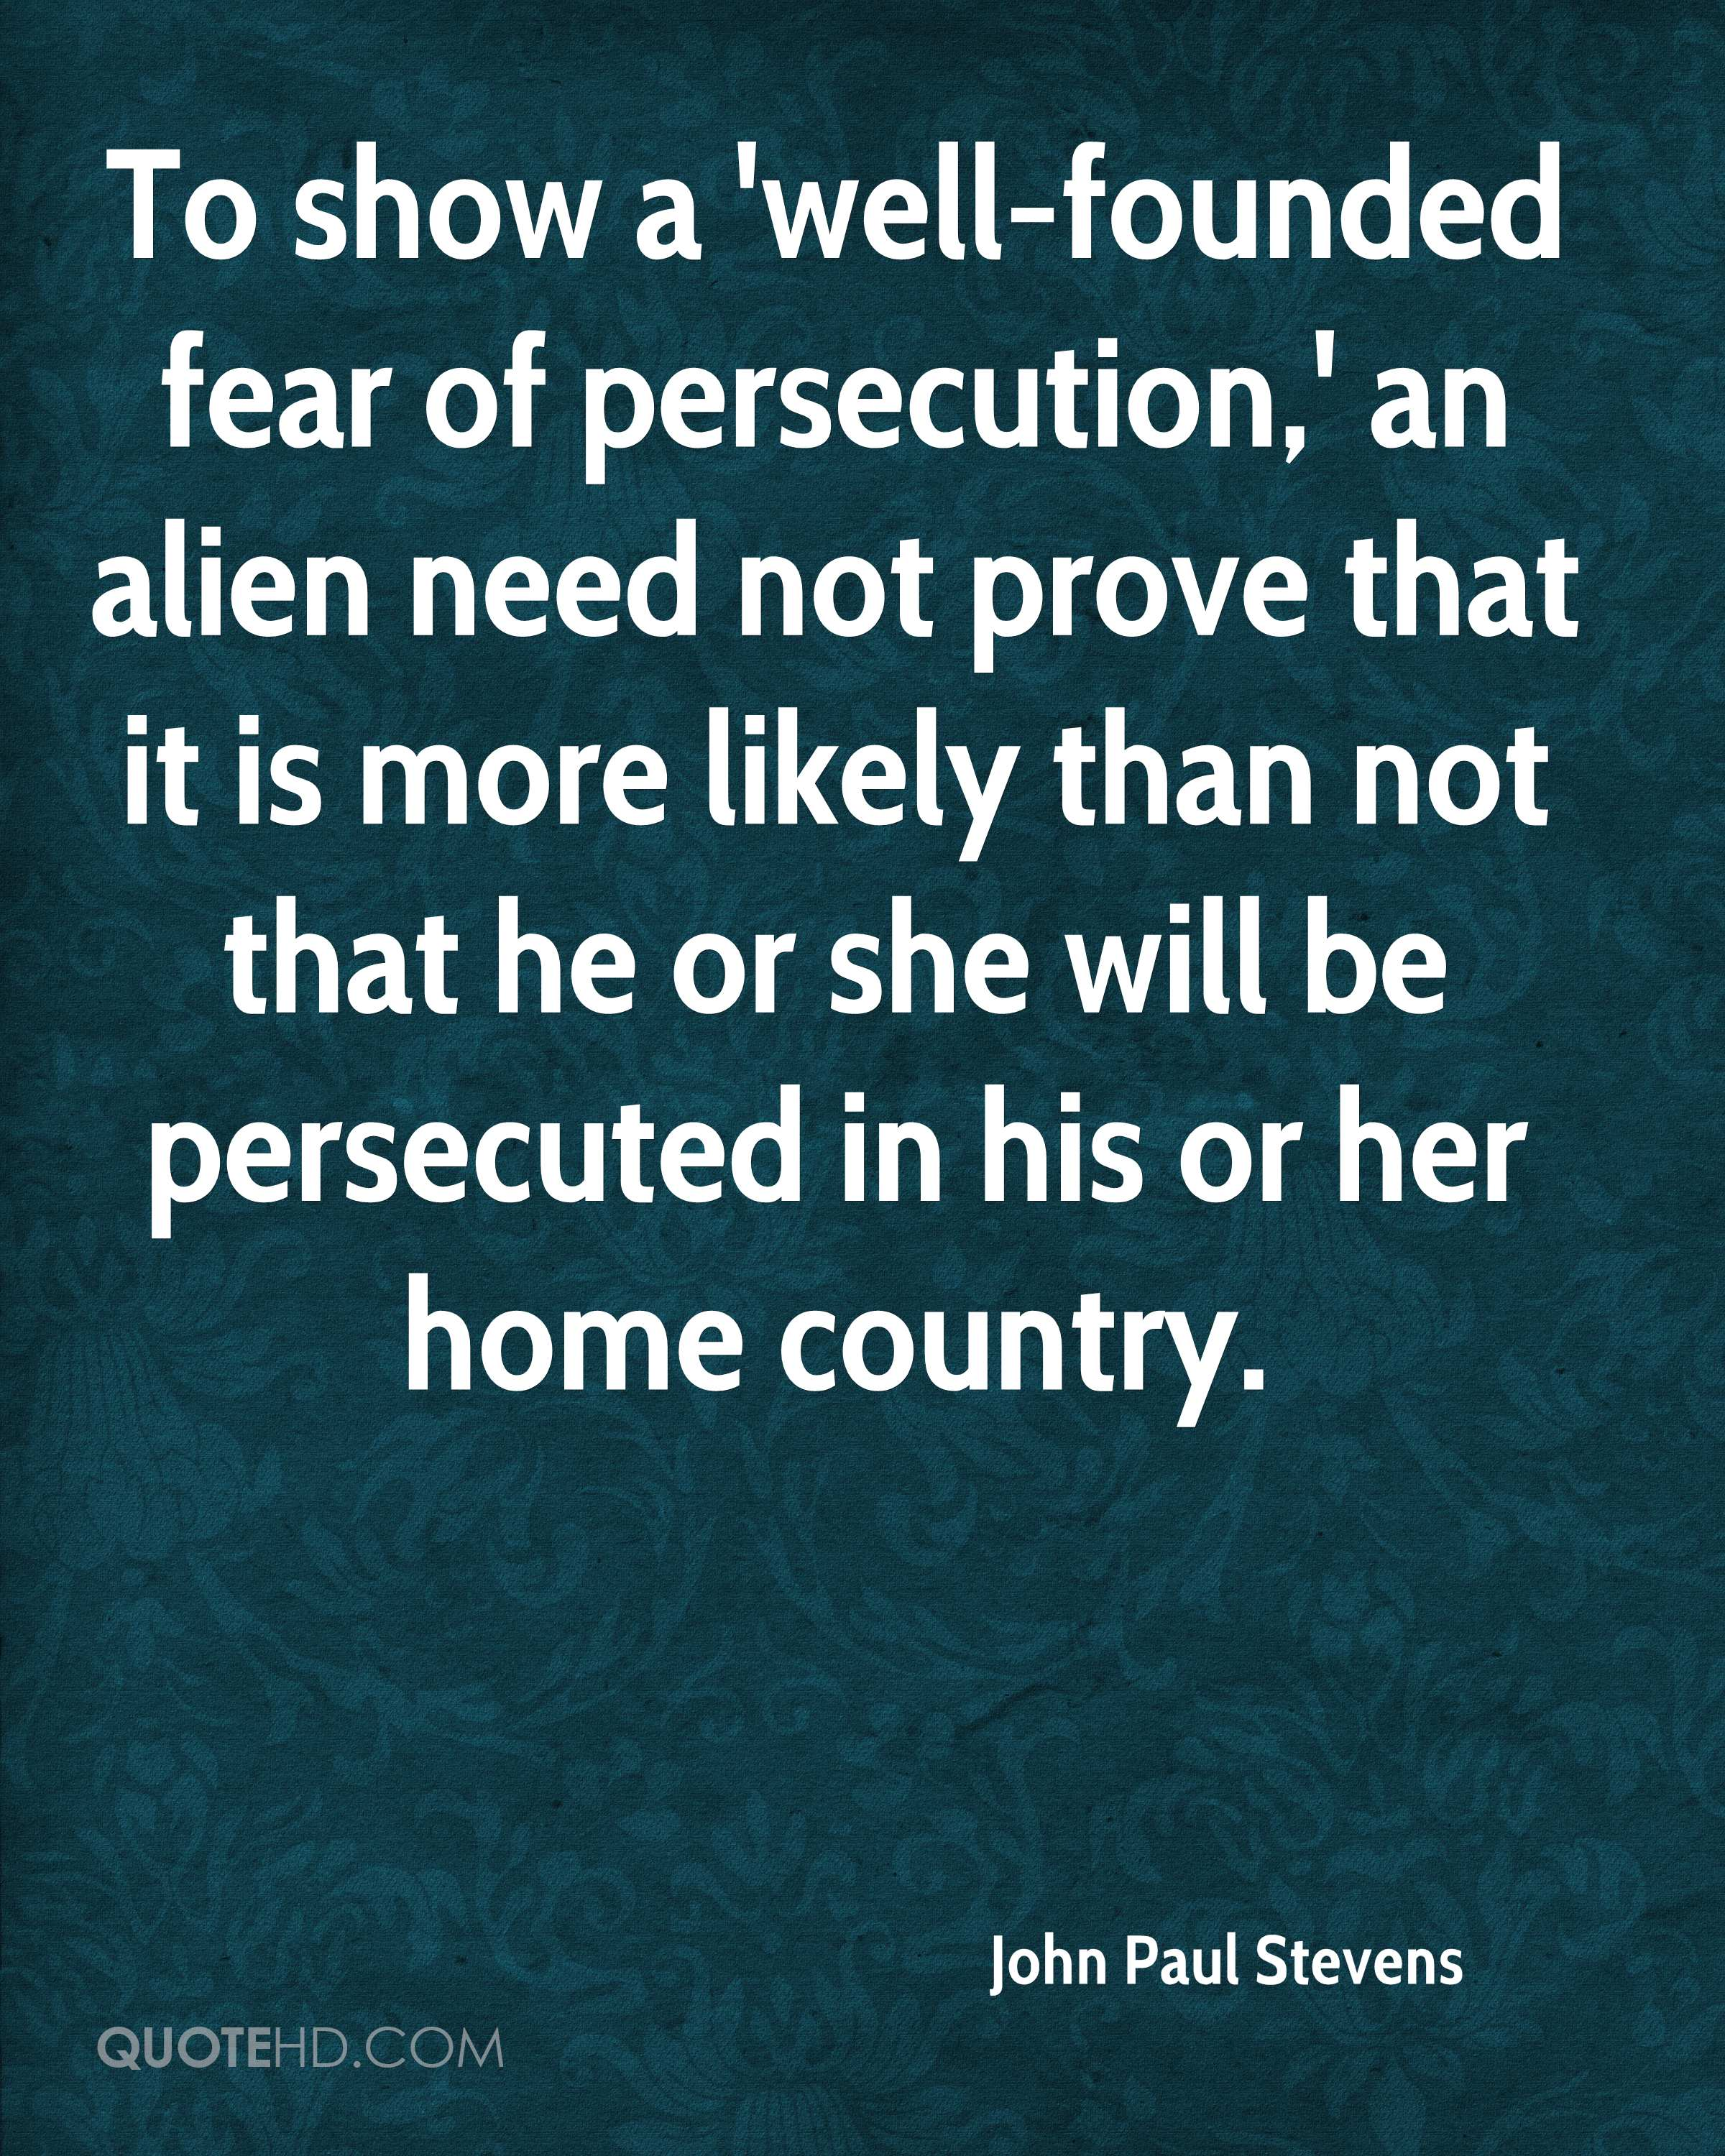 To show a 'well-founded fear of persecution,' an alien need not prove that it is more likely than not that he or she will be persecuted in his or her home country.